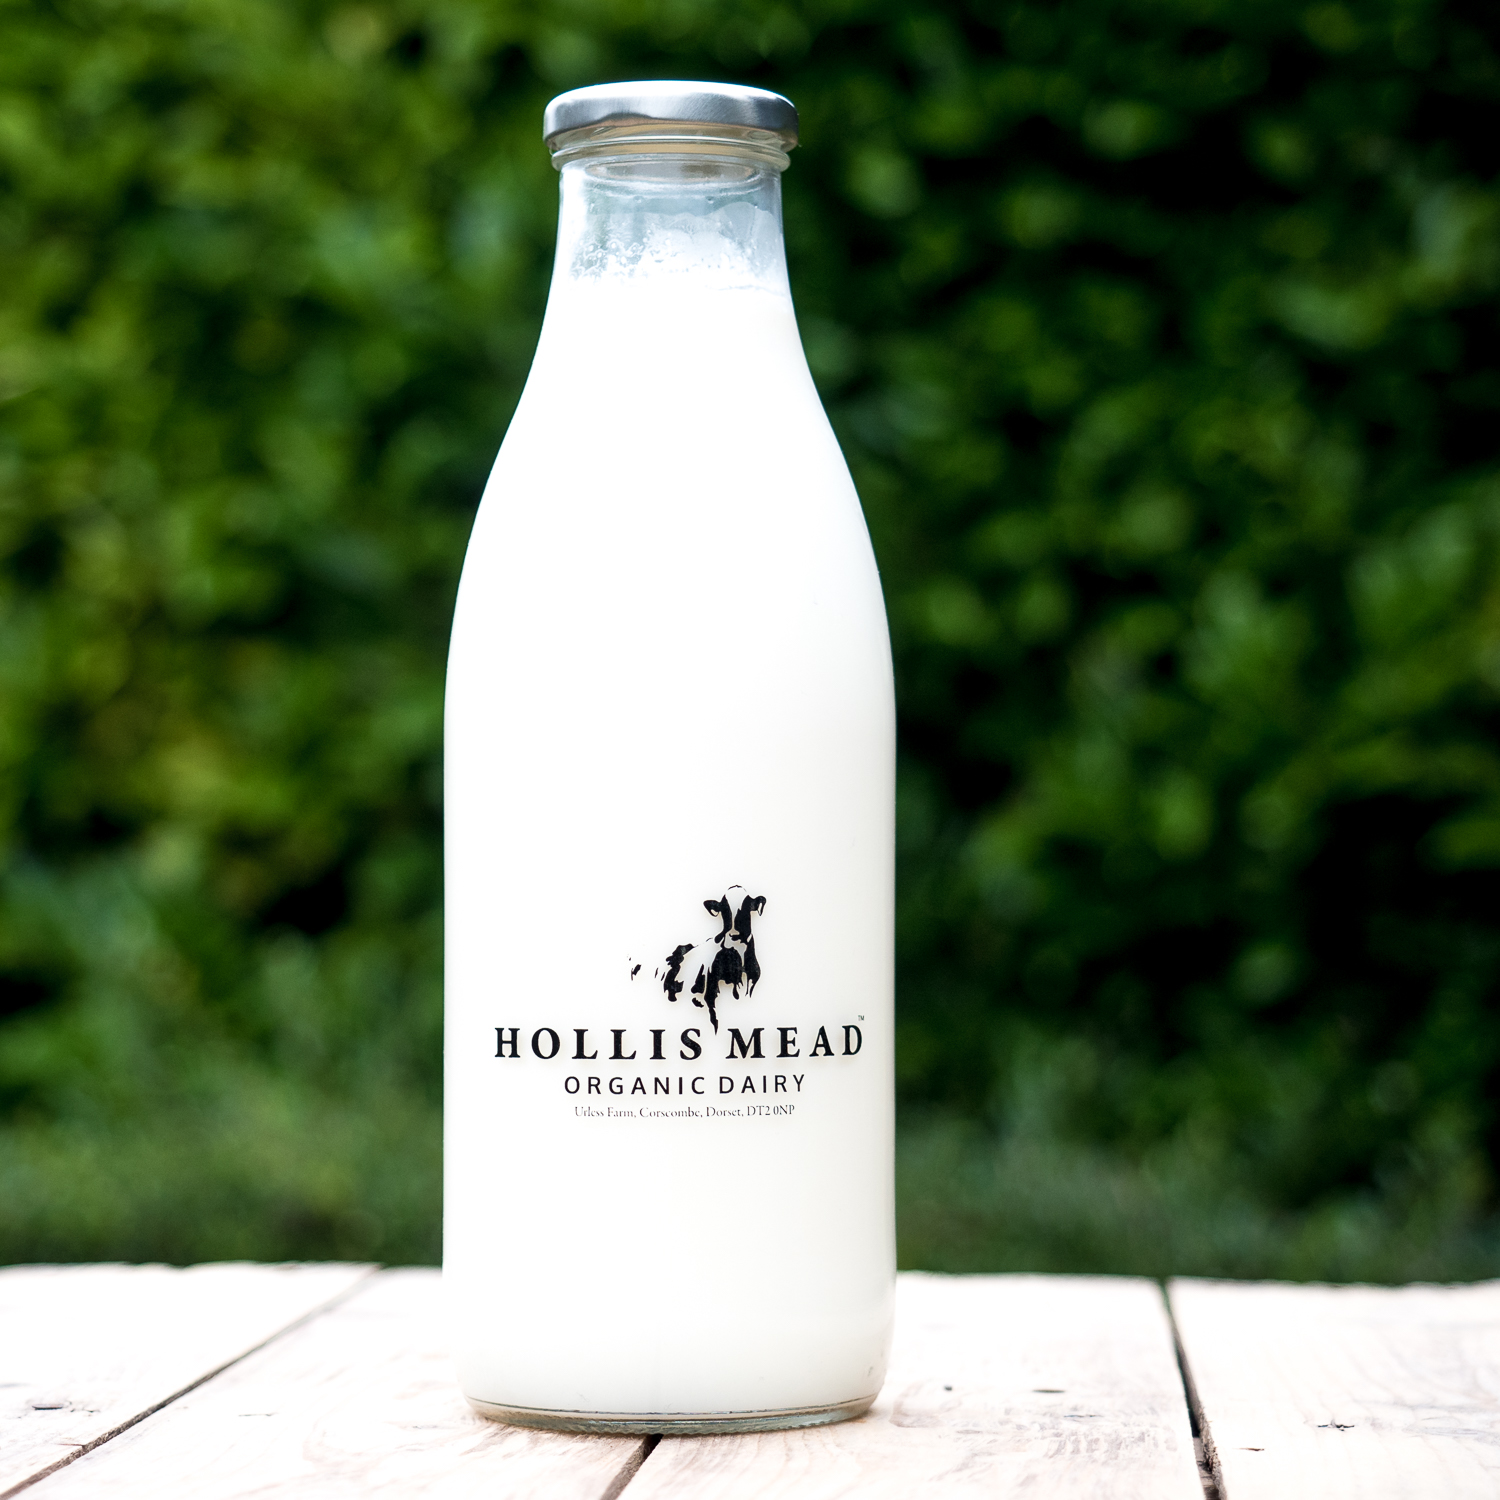 Hollis Mead Organic Dairy